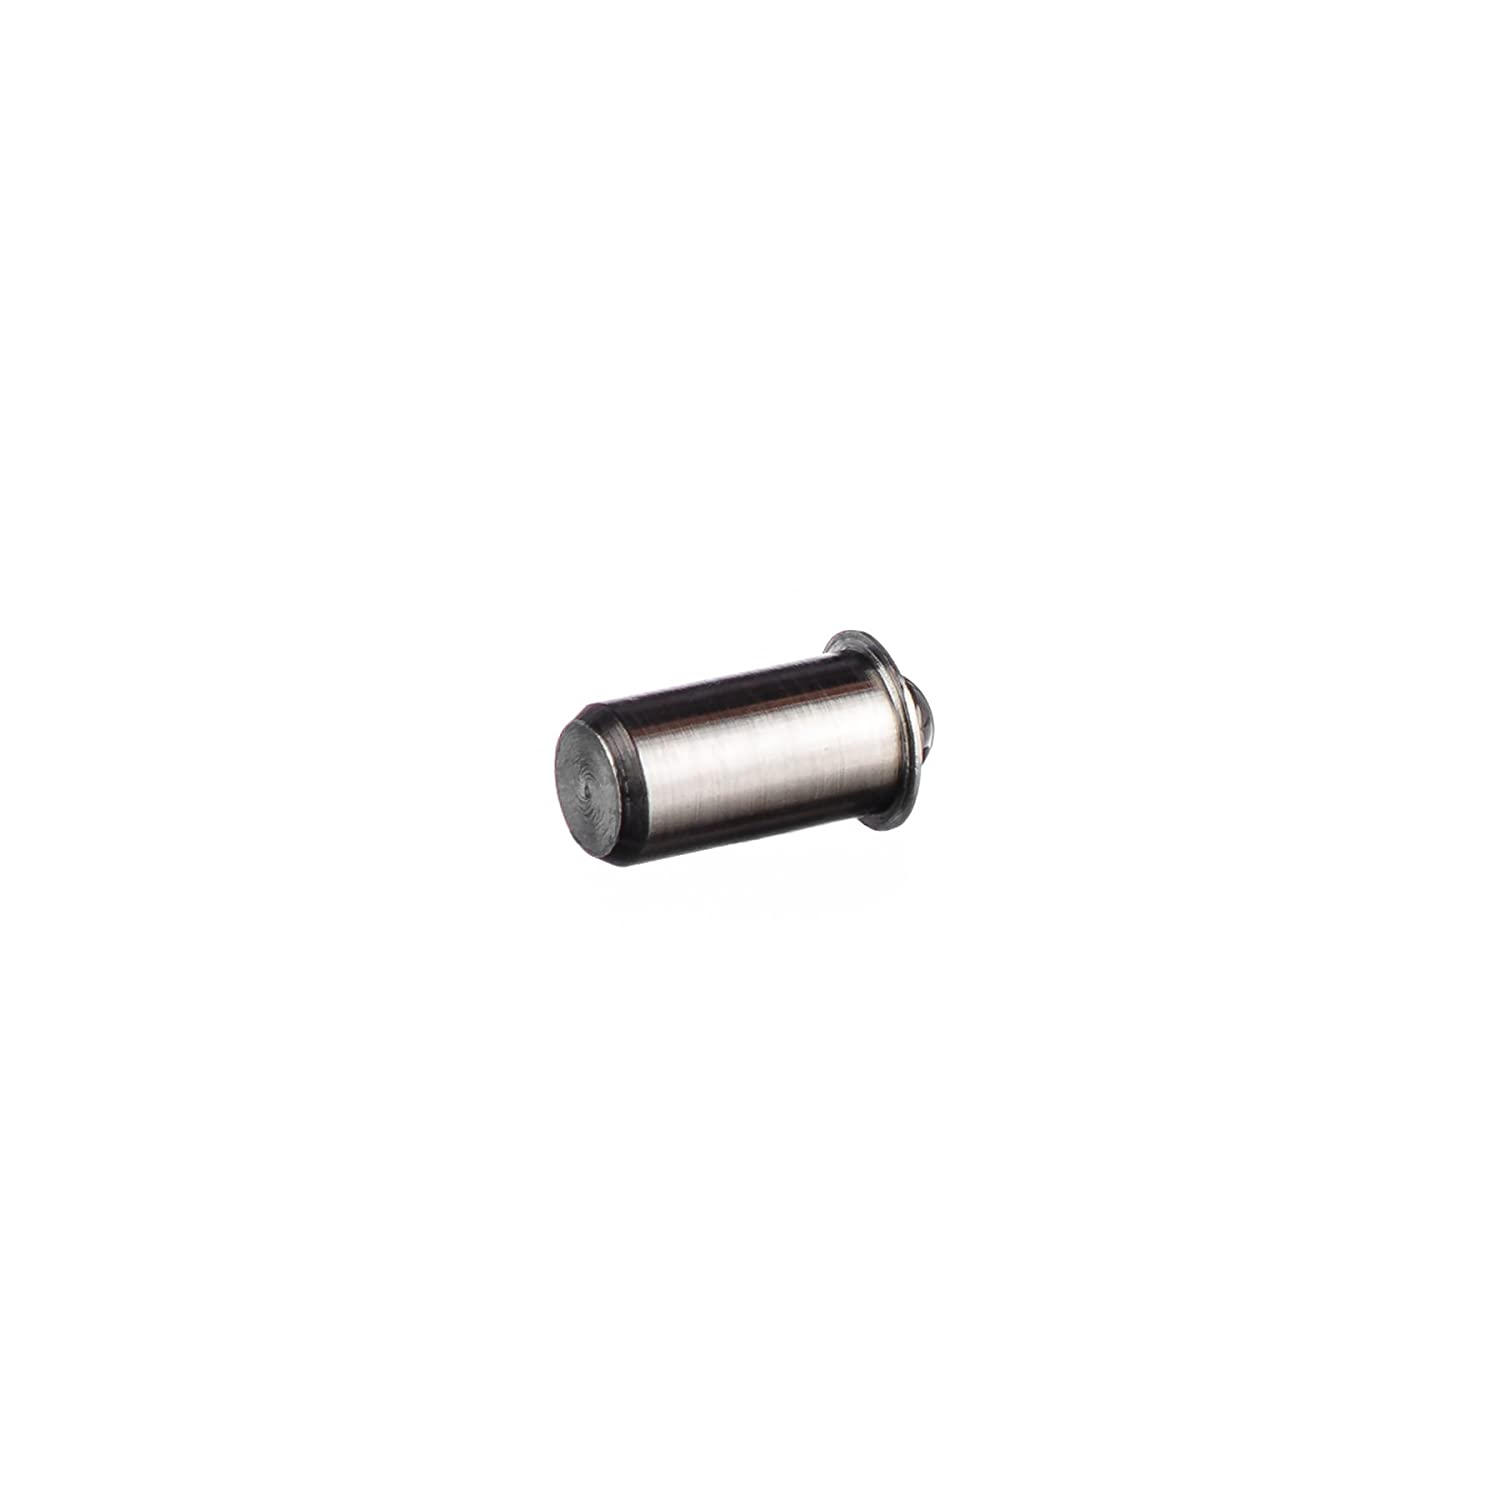 Vlier SPFBH58 Stainless Steel Push-Fit Ball Plunger 0.375 Outside